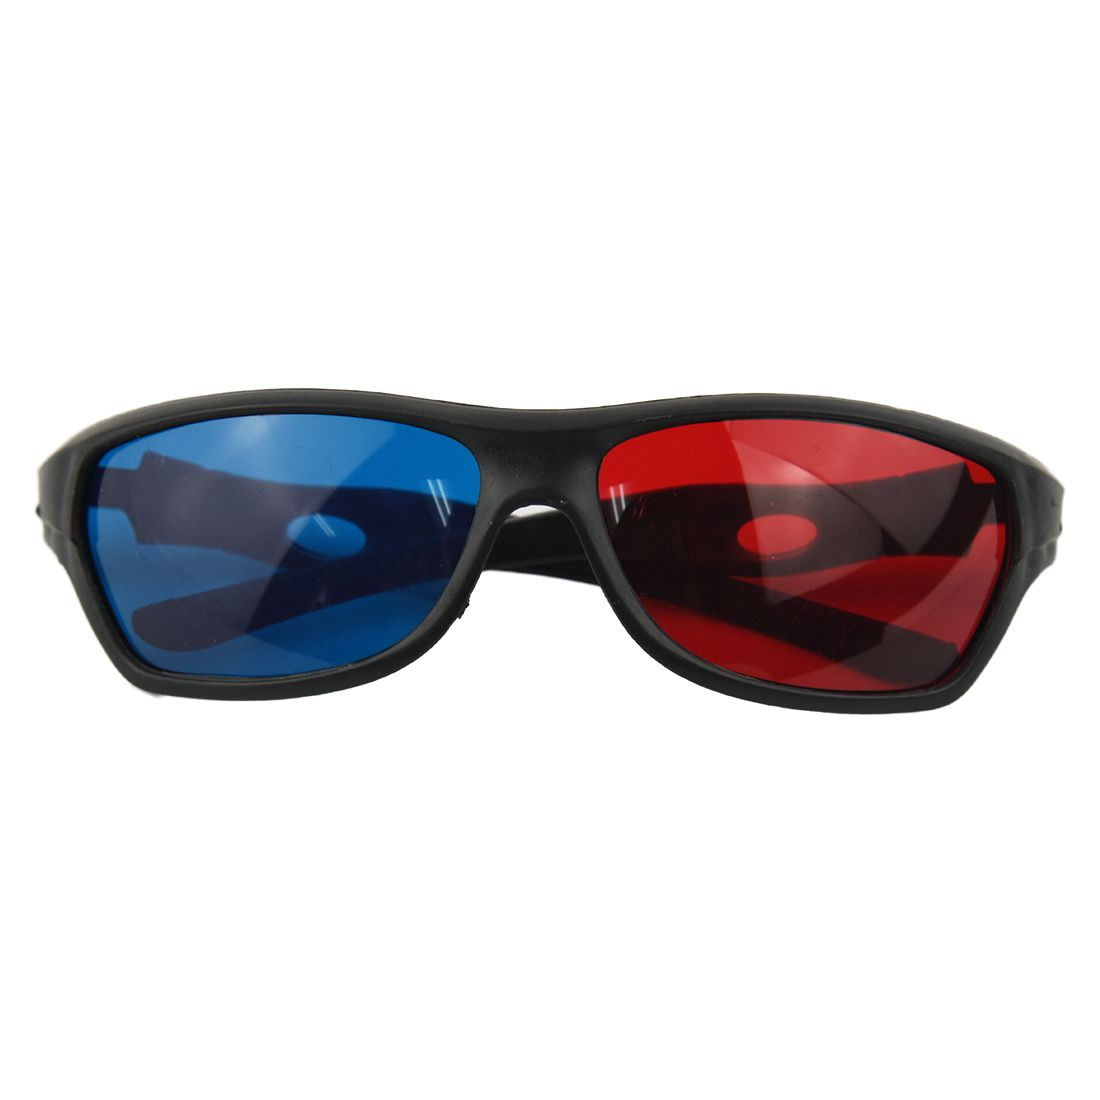 HOT-Fasdga 3D Plastic glasses/VR glasses Red-blue Anaglyph Simple style 3D Glasses 3D <font><b>movie</b></font> game DVD vision(Extra Upgrade Style) image